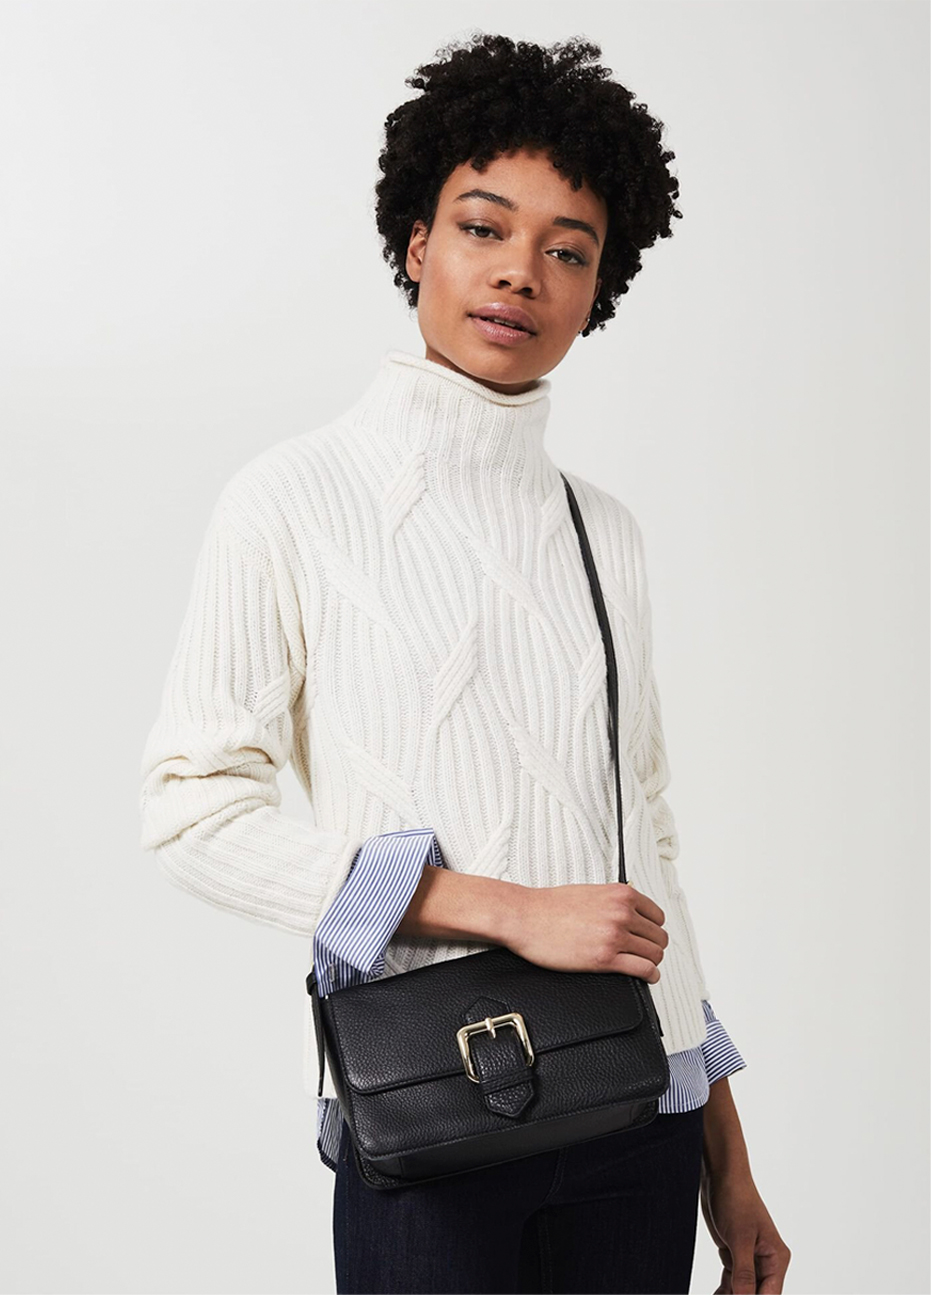 Image of model wearing a cream cable neck sweater layered over a pinstripe shirt.